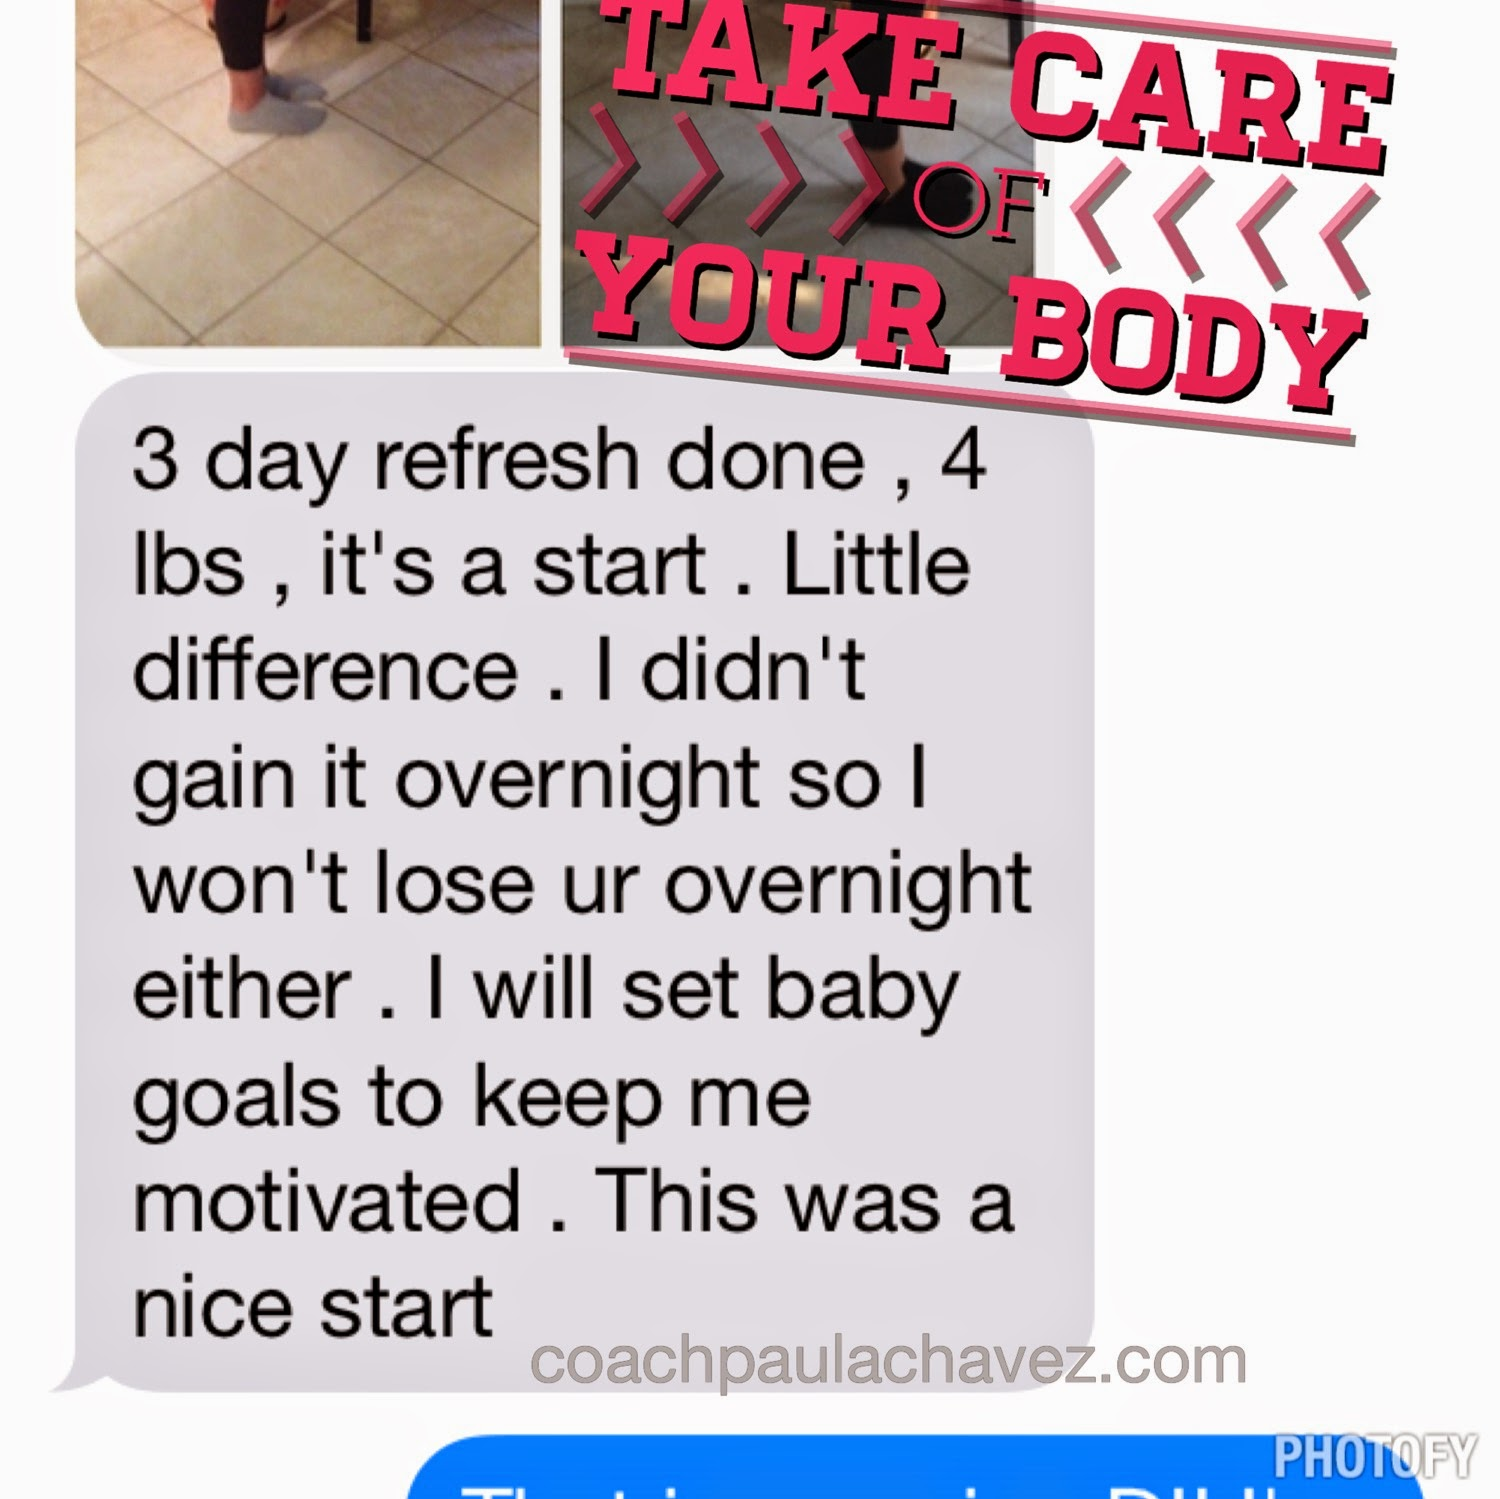 http://coachpaulachavez.blogspot.com/2014/10/i-broke-bad-habits-3-day-refresh-before.html